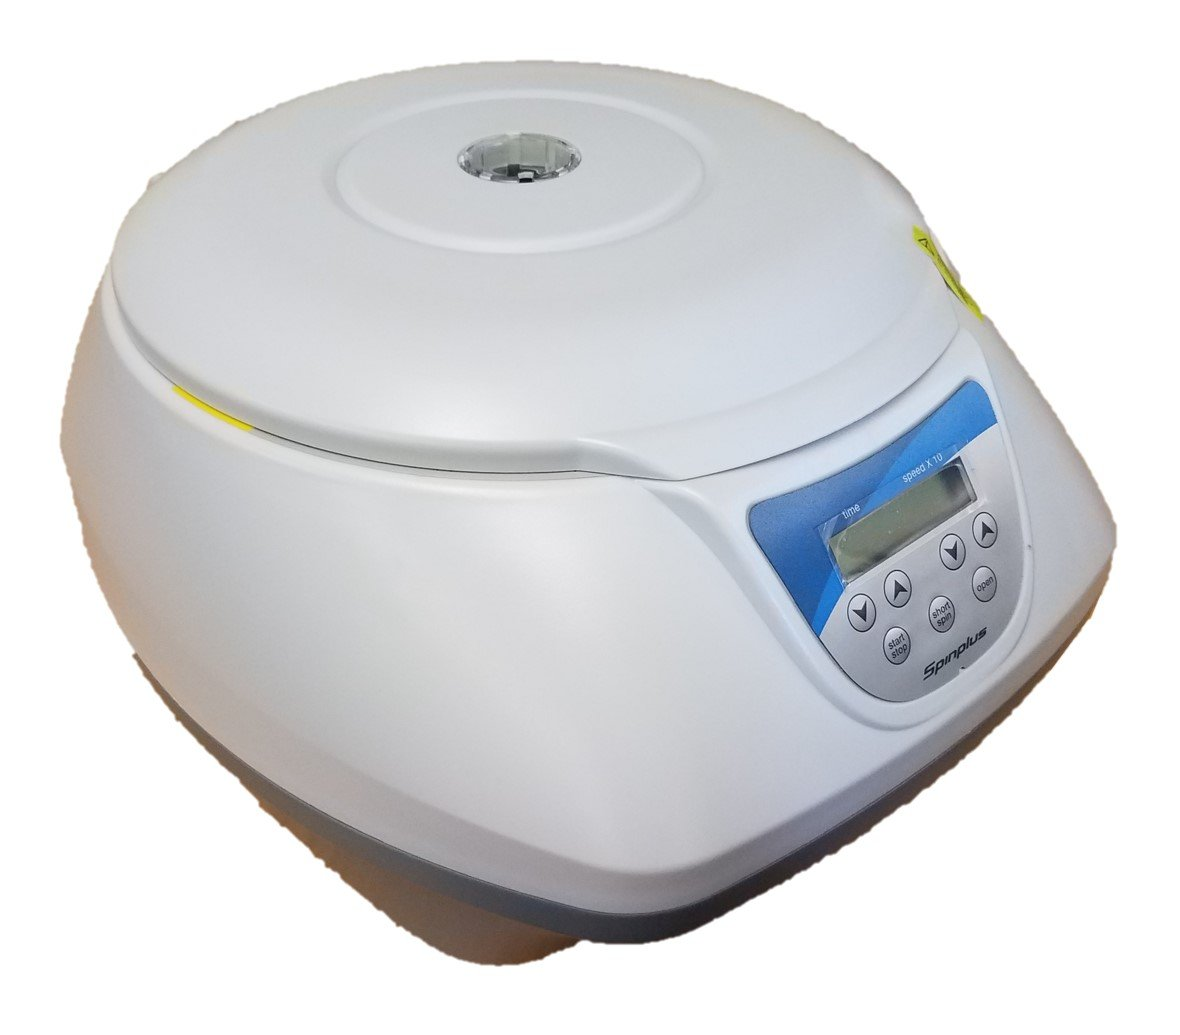 Digital Bench-top Centrifuge, 100-4000rpm, 8x15ml Rotor with Adapters for 7 ml and 5 ml Tubes by Labnique